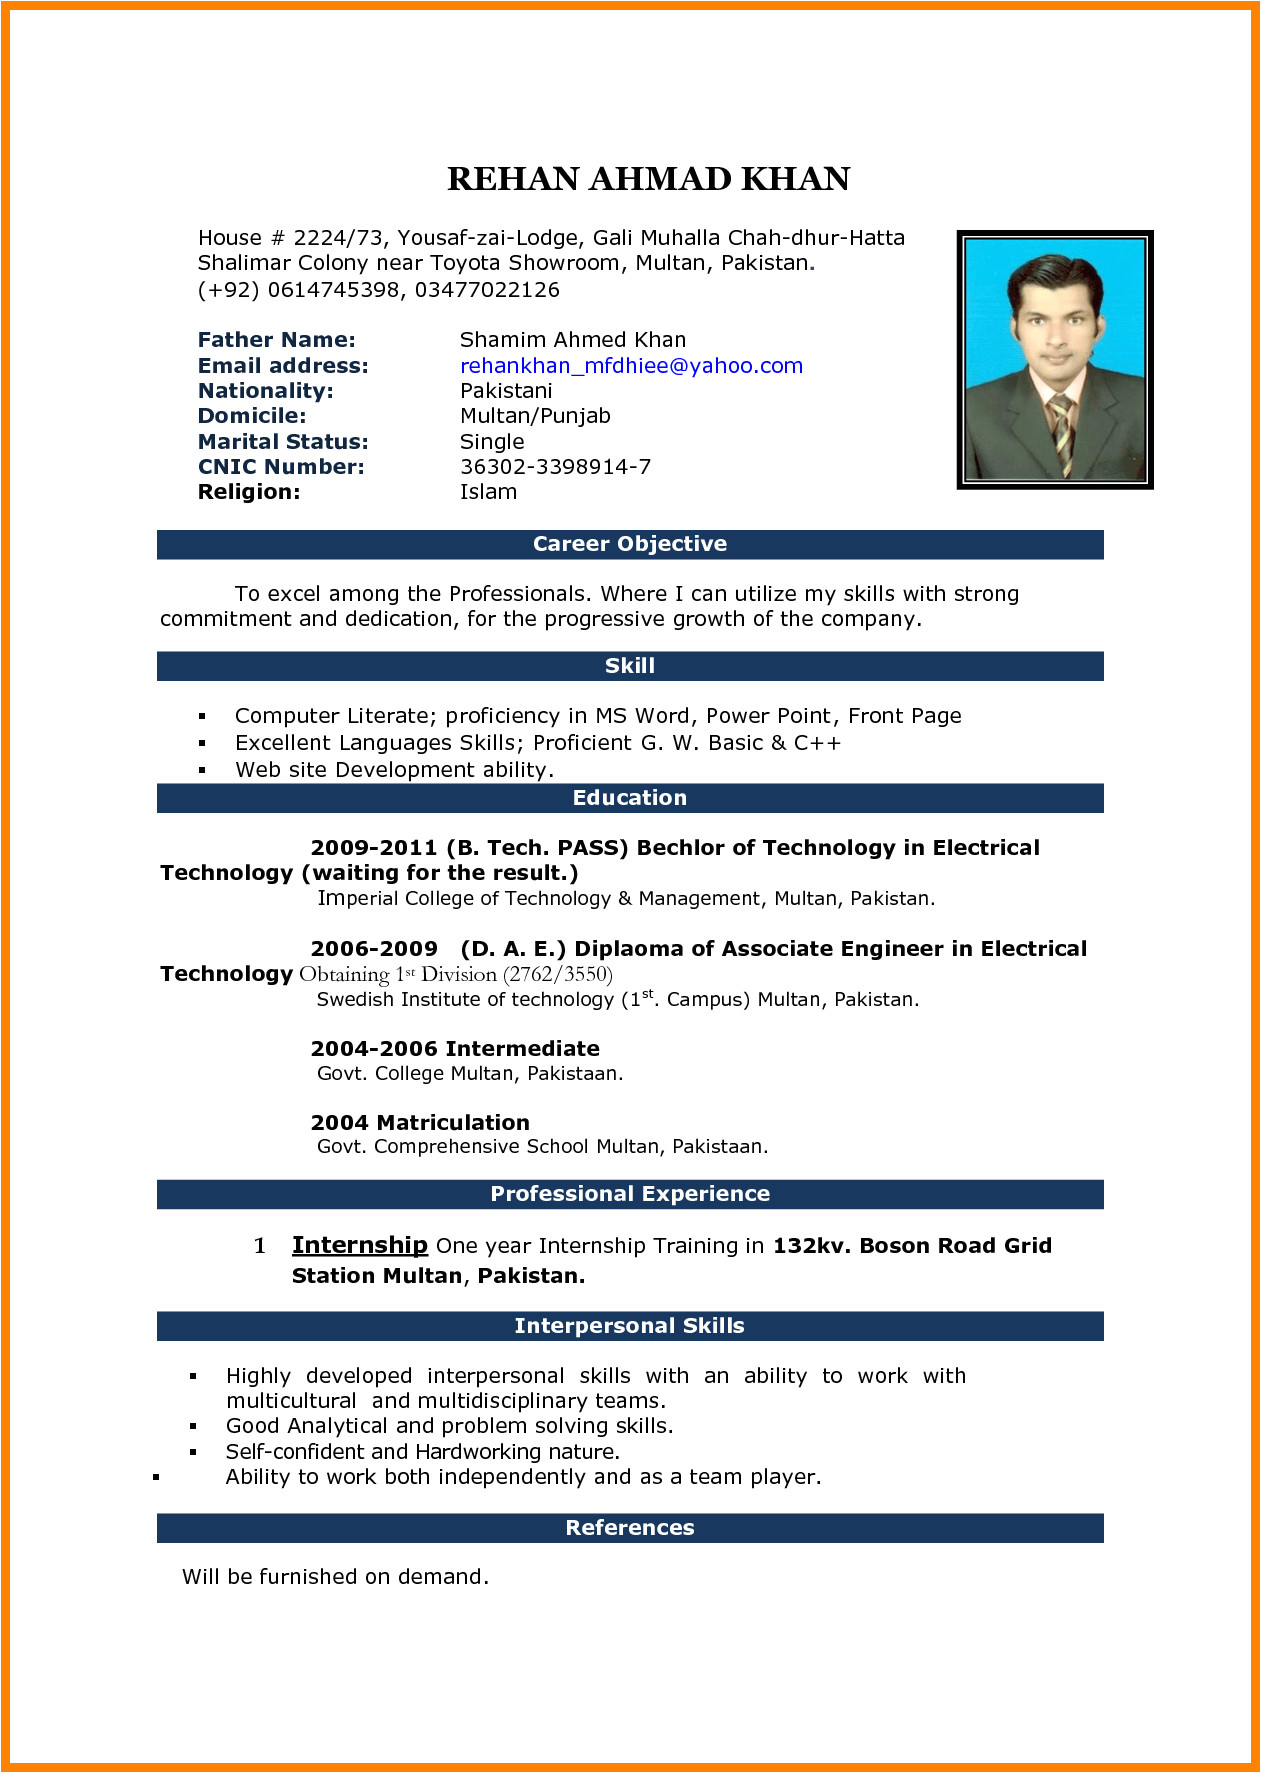 Cv Resume format Word File 5 Cv Samples Word File Download theorynpractice